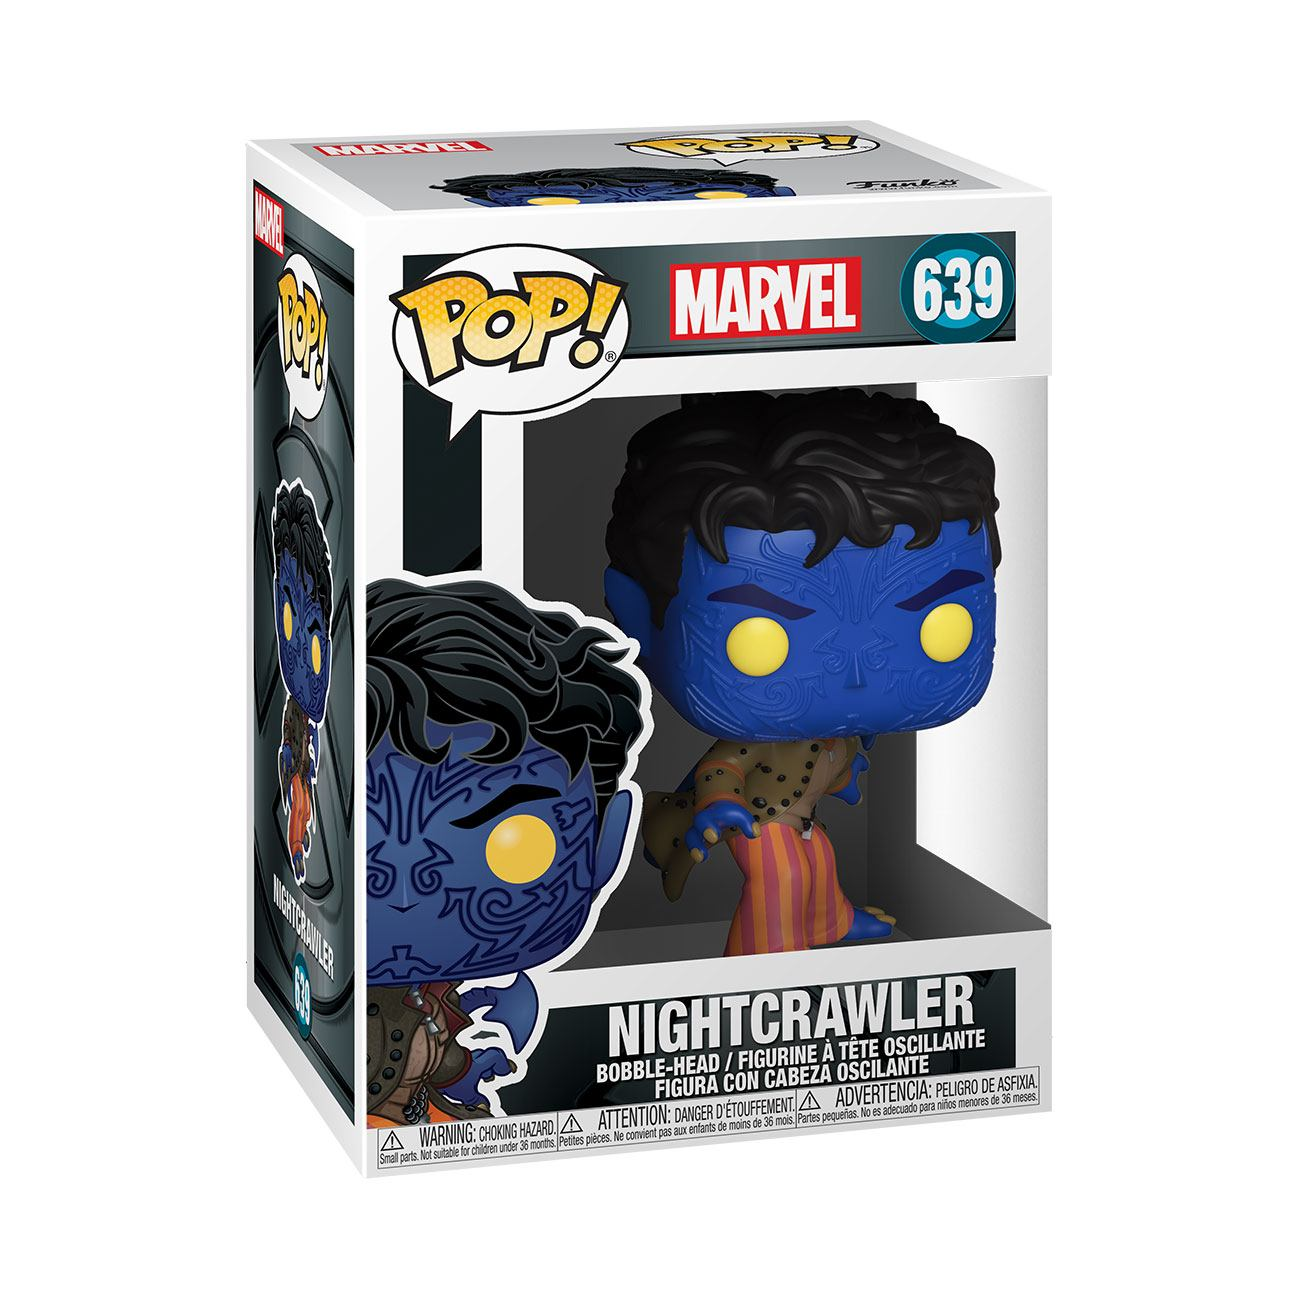 Marvel: X-Men 20th Anniversary - Nightcrawler #639